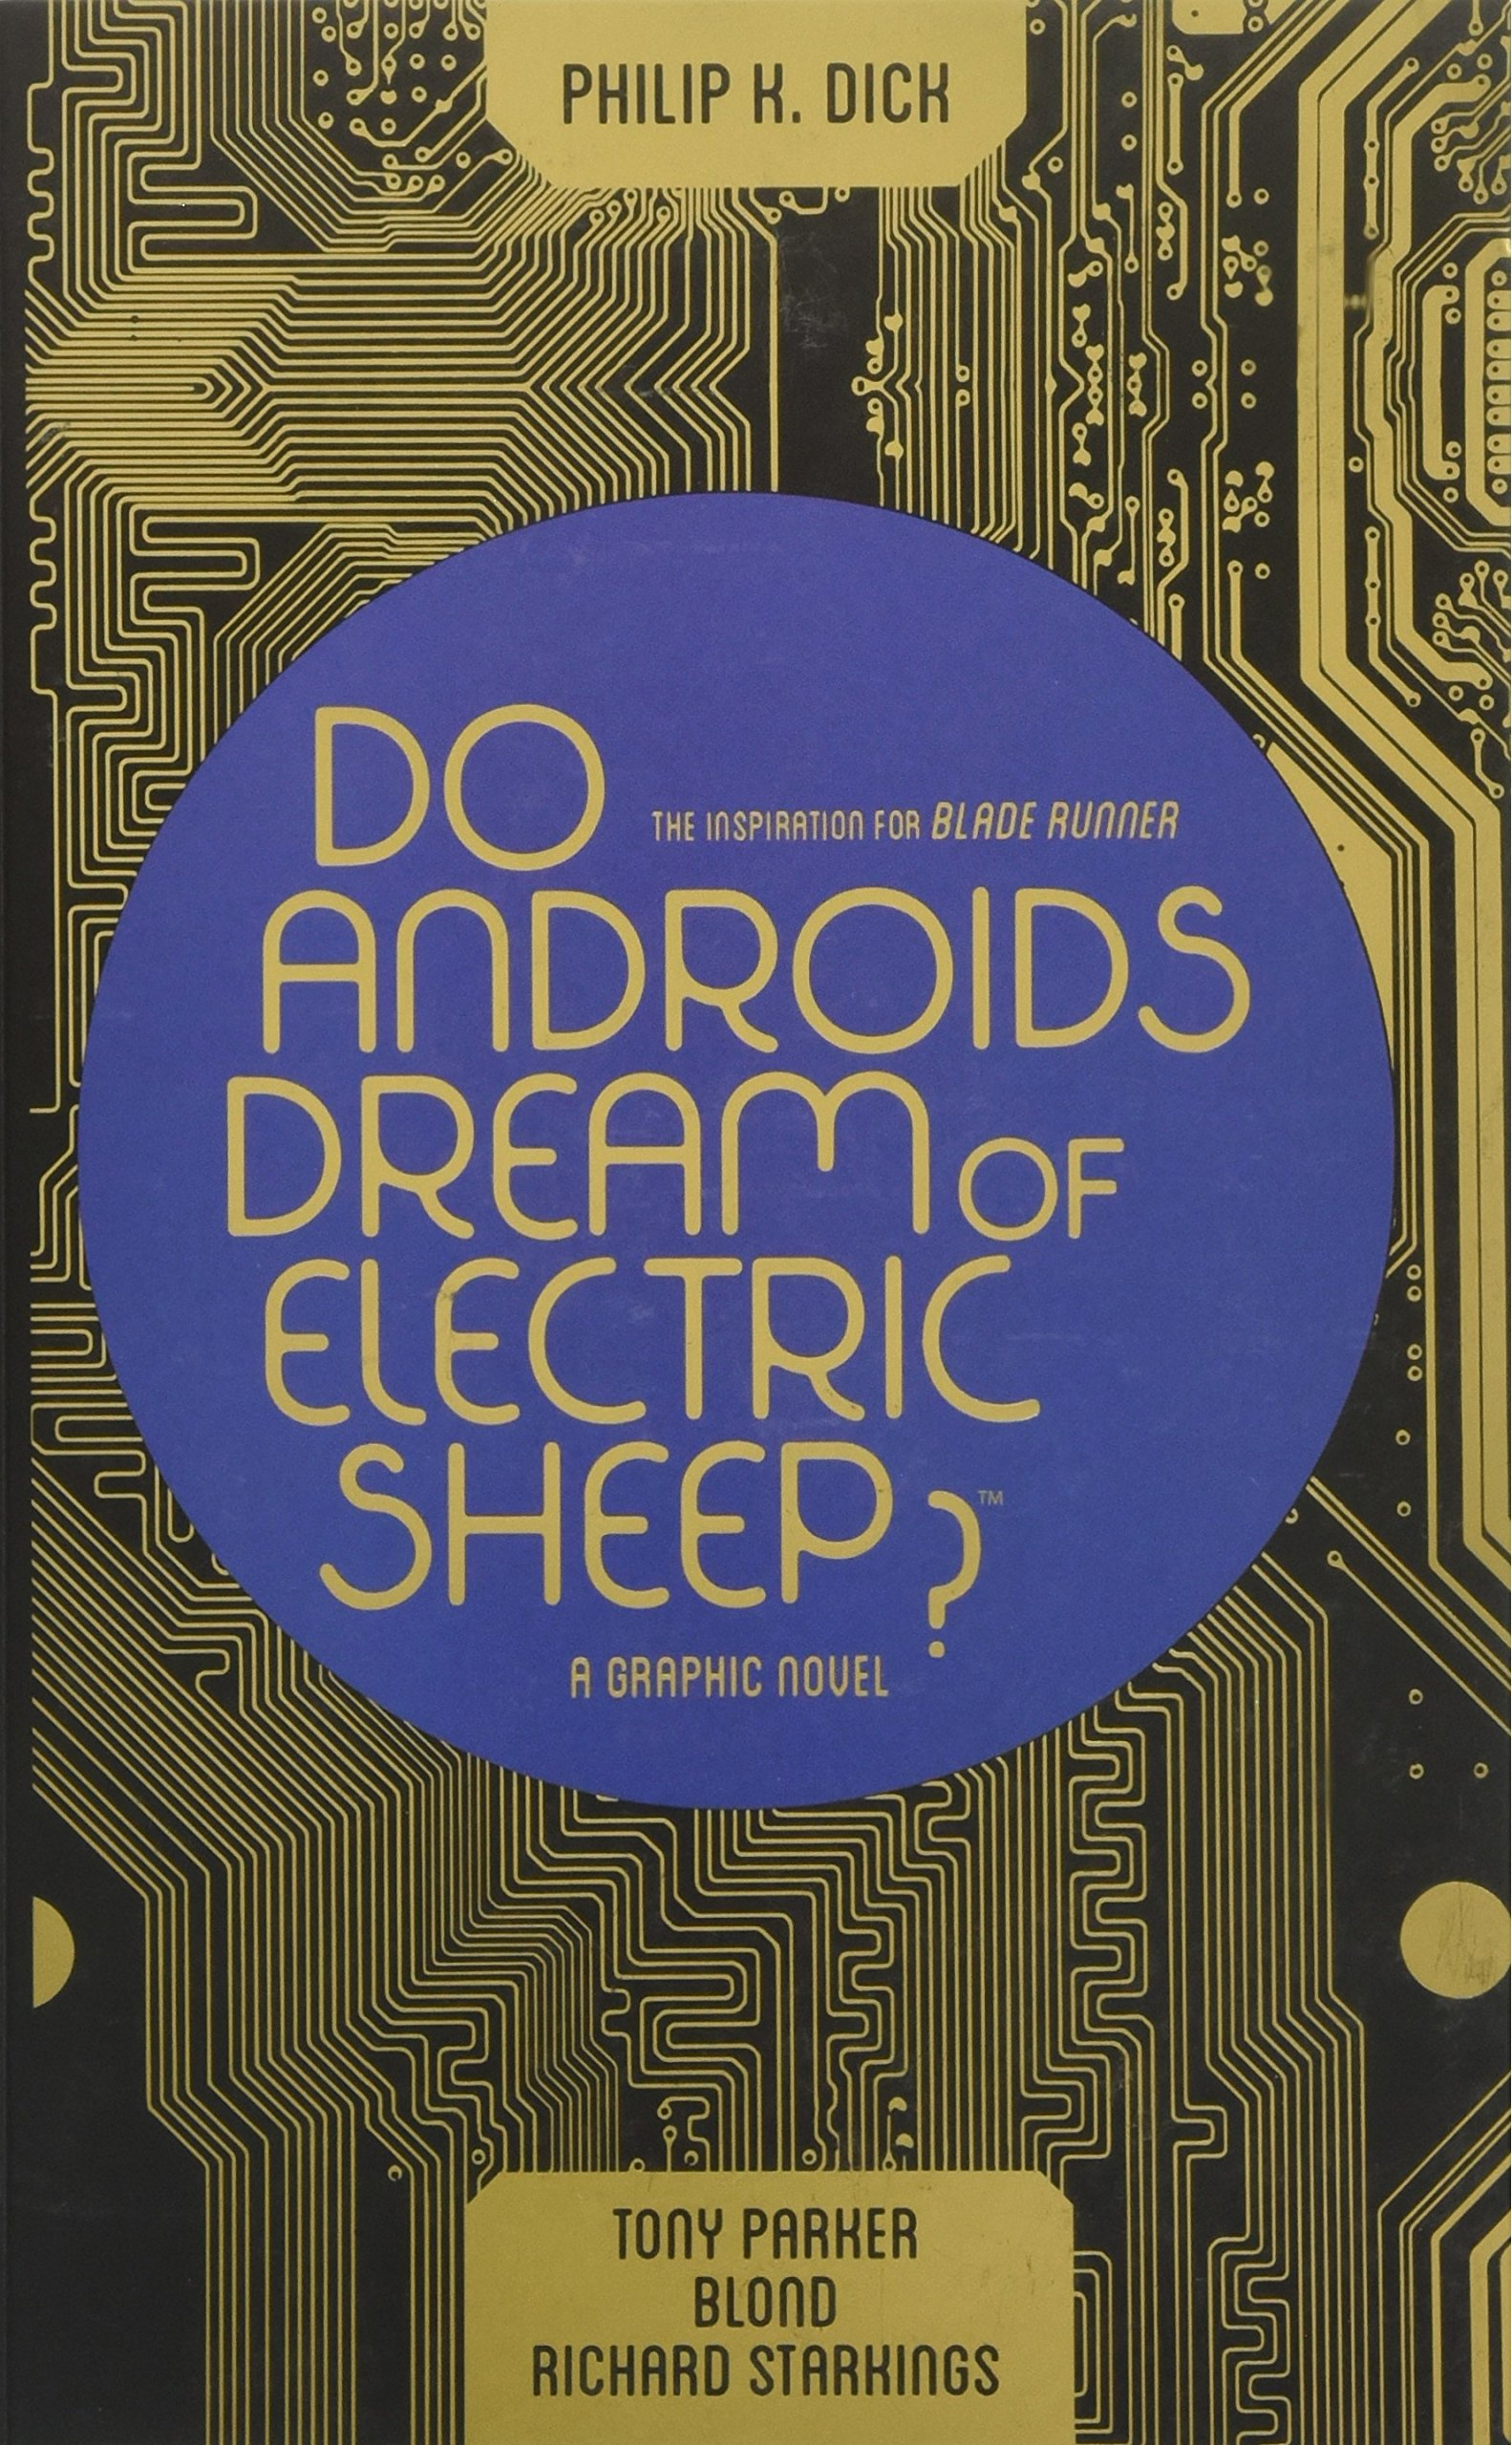 Do Androids Dream of Electric Sheep? (comic book)